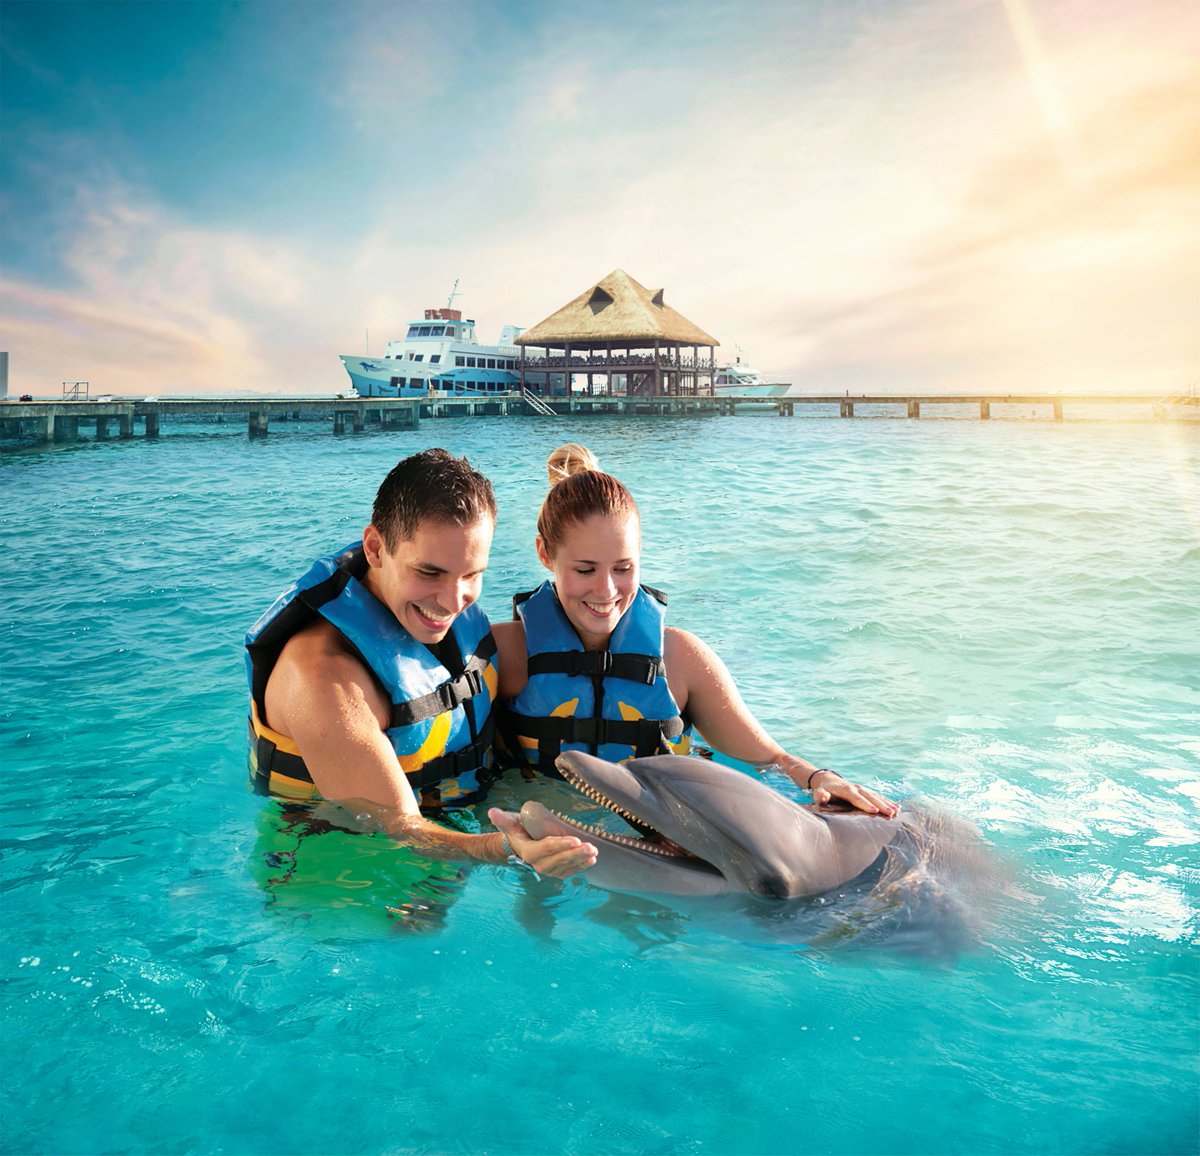 The Dolphin Cat is an amazing combo that includes snorkeling sailing and swimming with the dolphins . This tour is available from #Cancun and #RivieraMaya! Reserve here: https://bit.ly/dolphin_swim_cancun…pic.twitter.com/nNRw4YGkuo